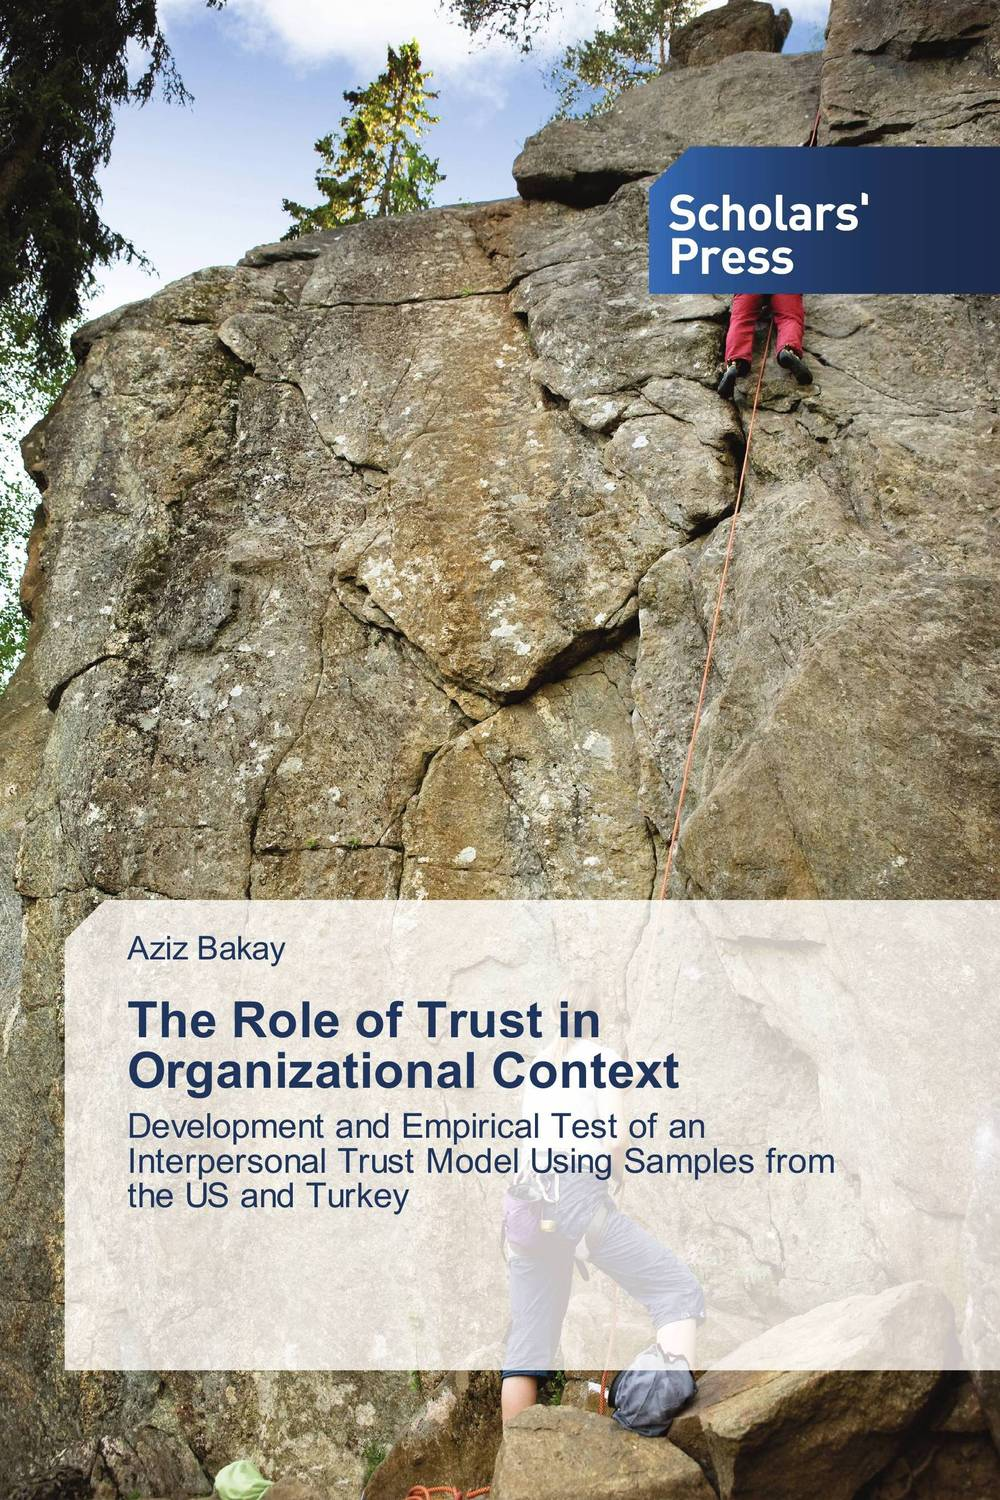 The Role of Trust in Organizational Context